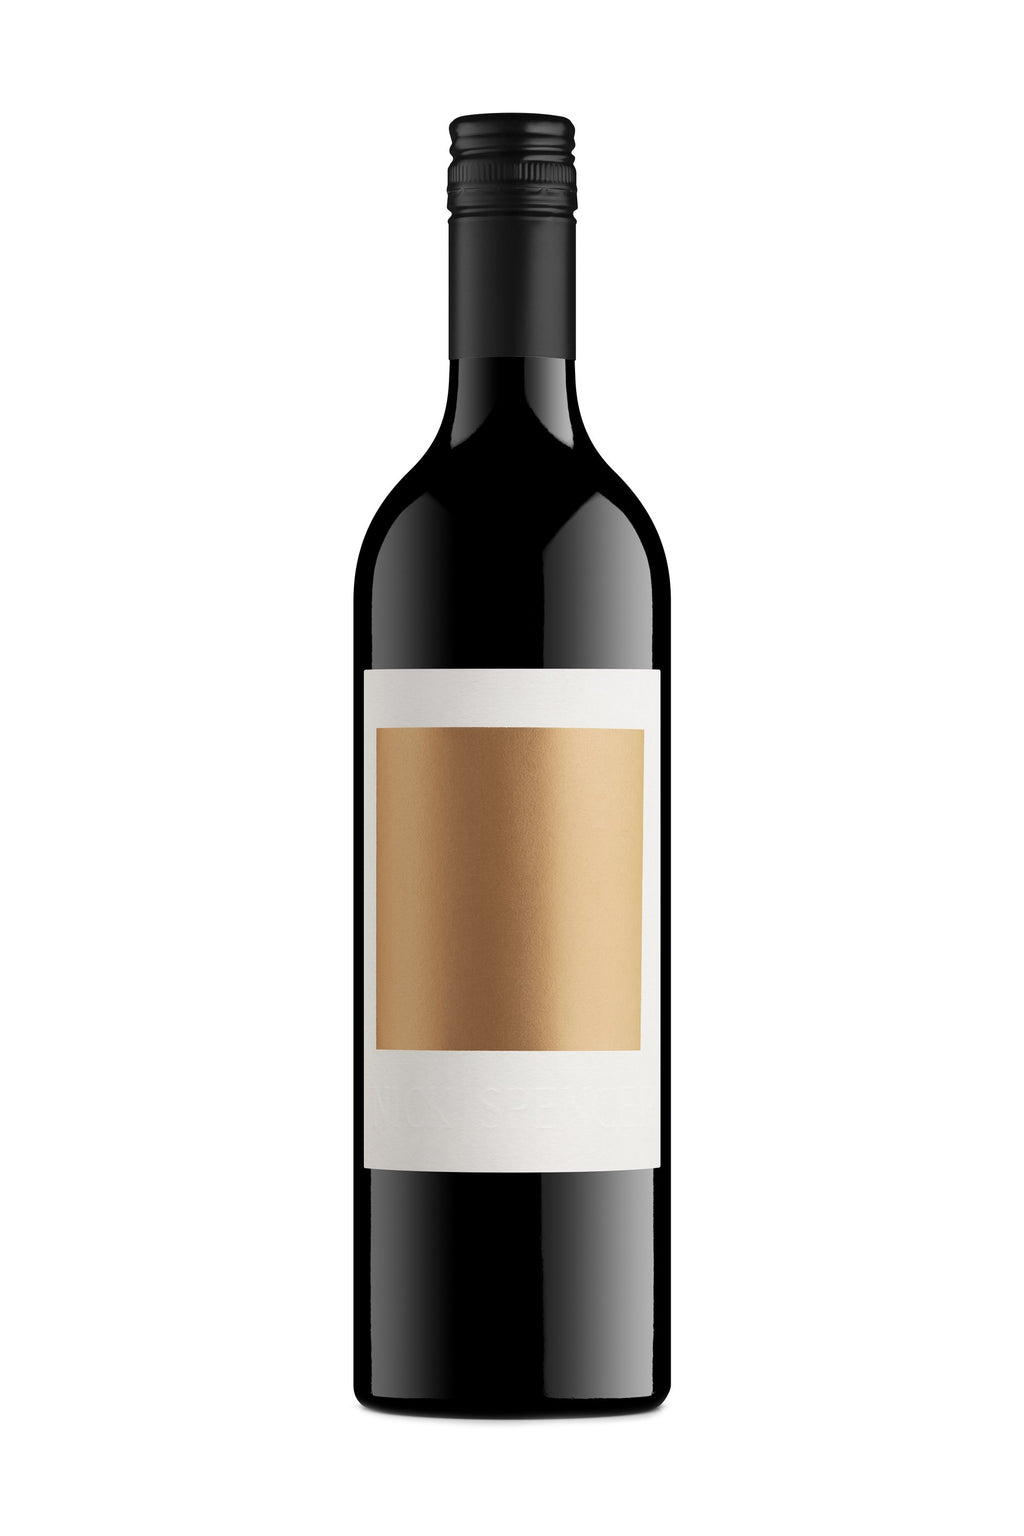 Nick Spencer Wines Gundagai Medium Bodied Blend (Shiraz, Cabernet Sauvignon, Tempranillo, Touriga) 2018